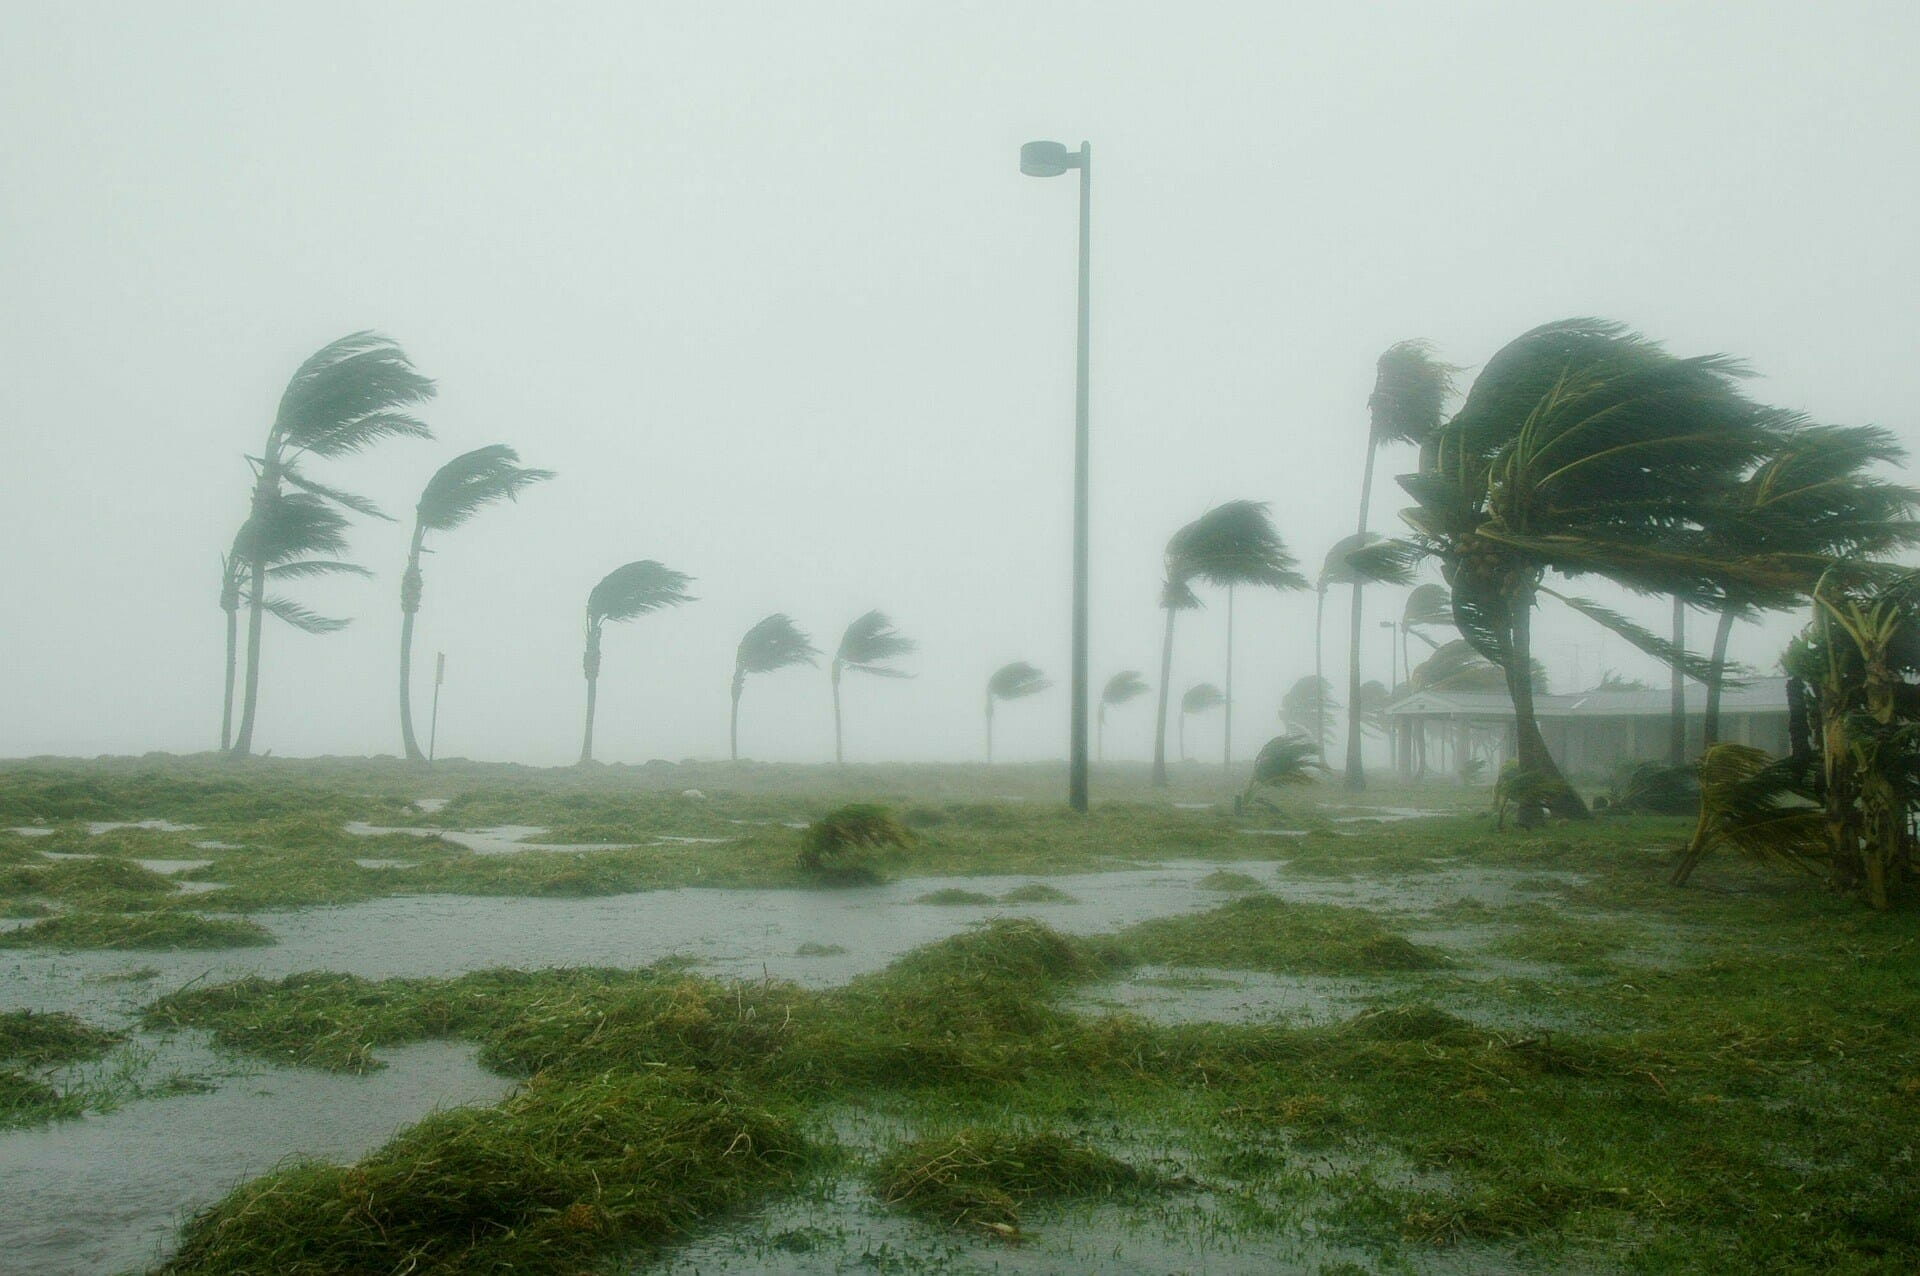 Hurricane and High Winds on trees outside